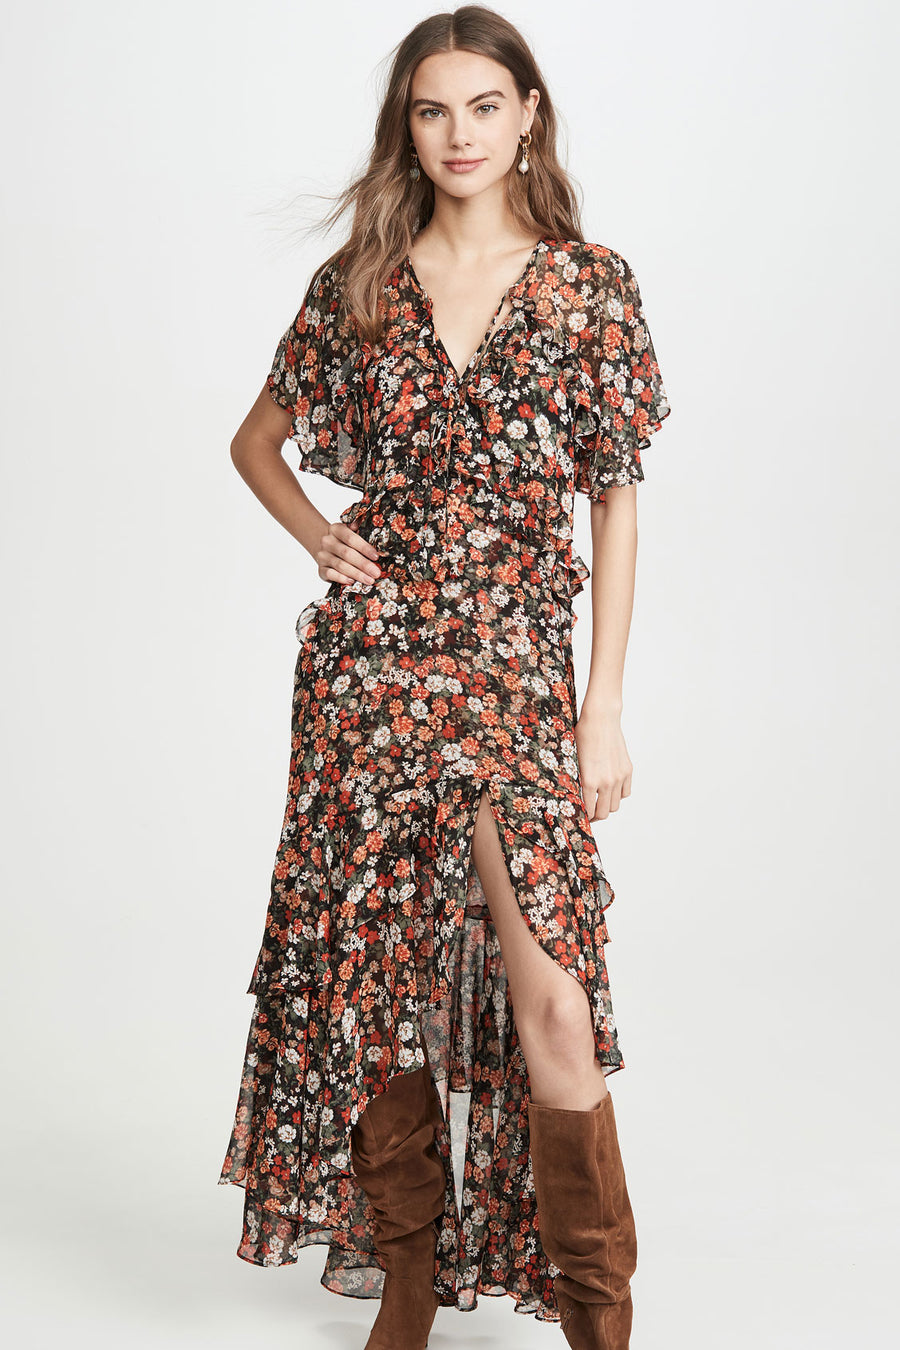 Katarina Dress - Safari Floral - Pavilion